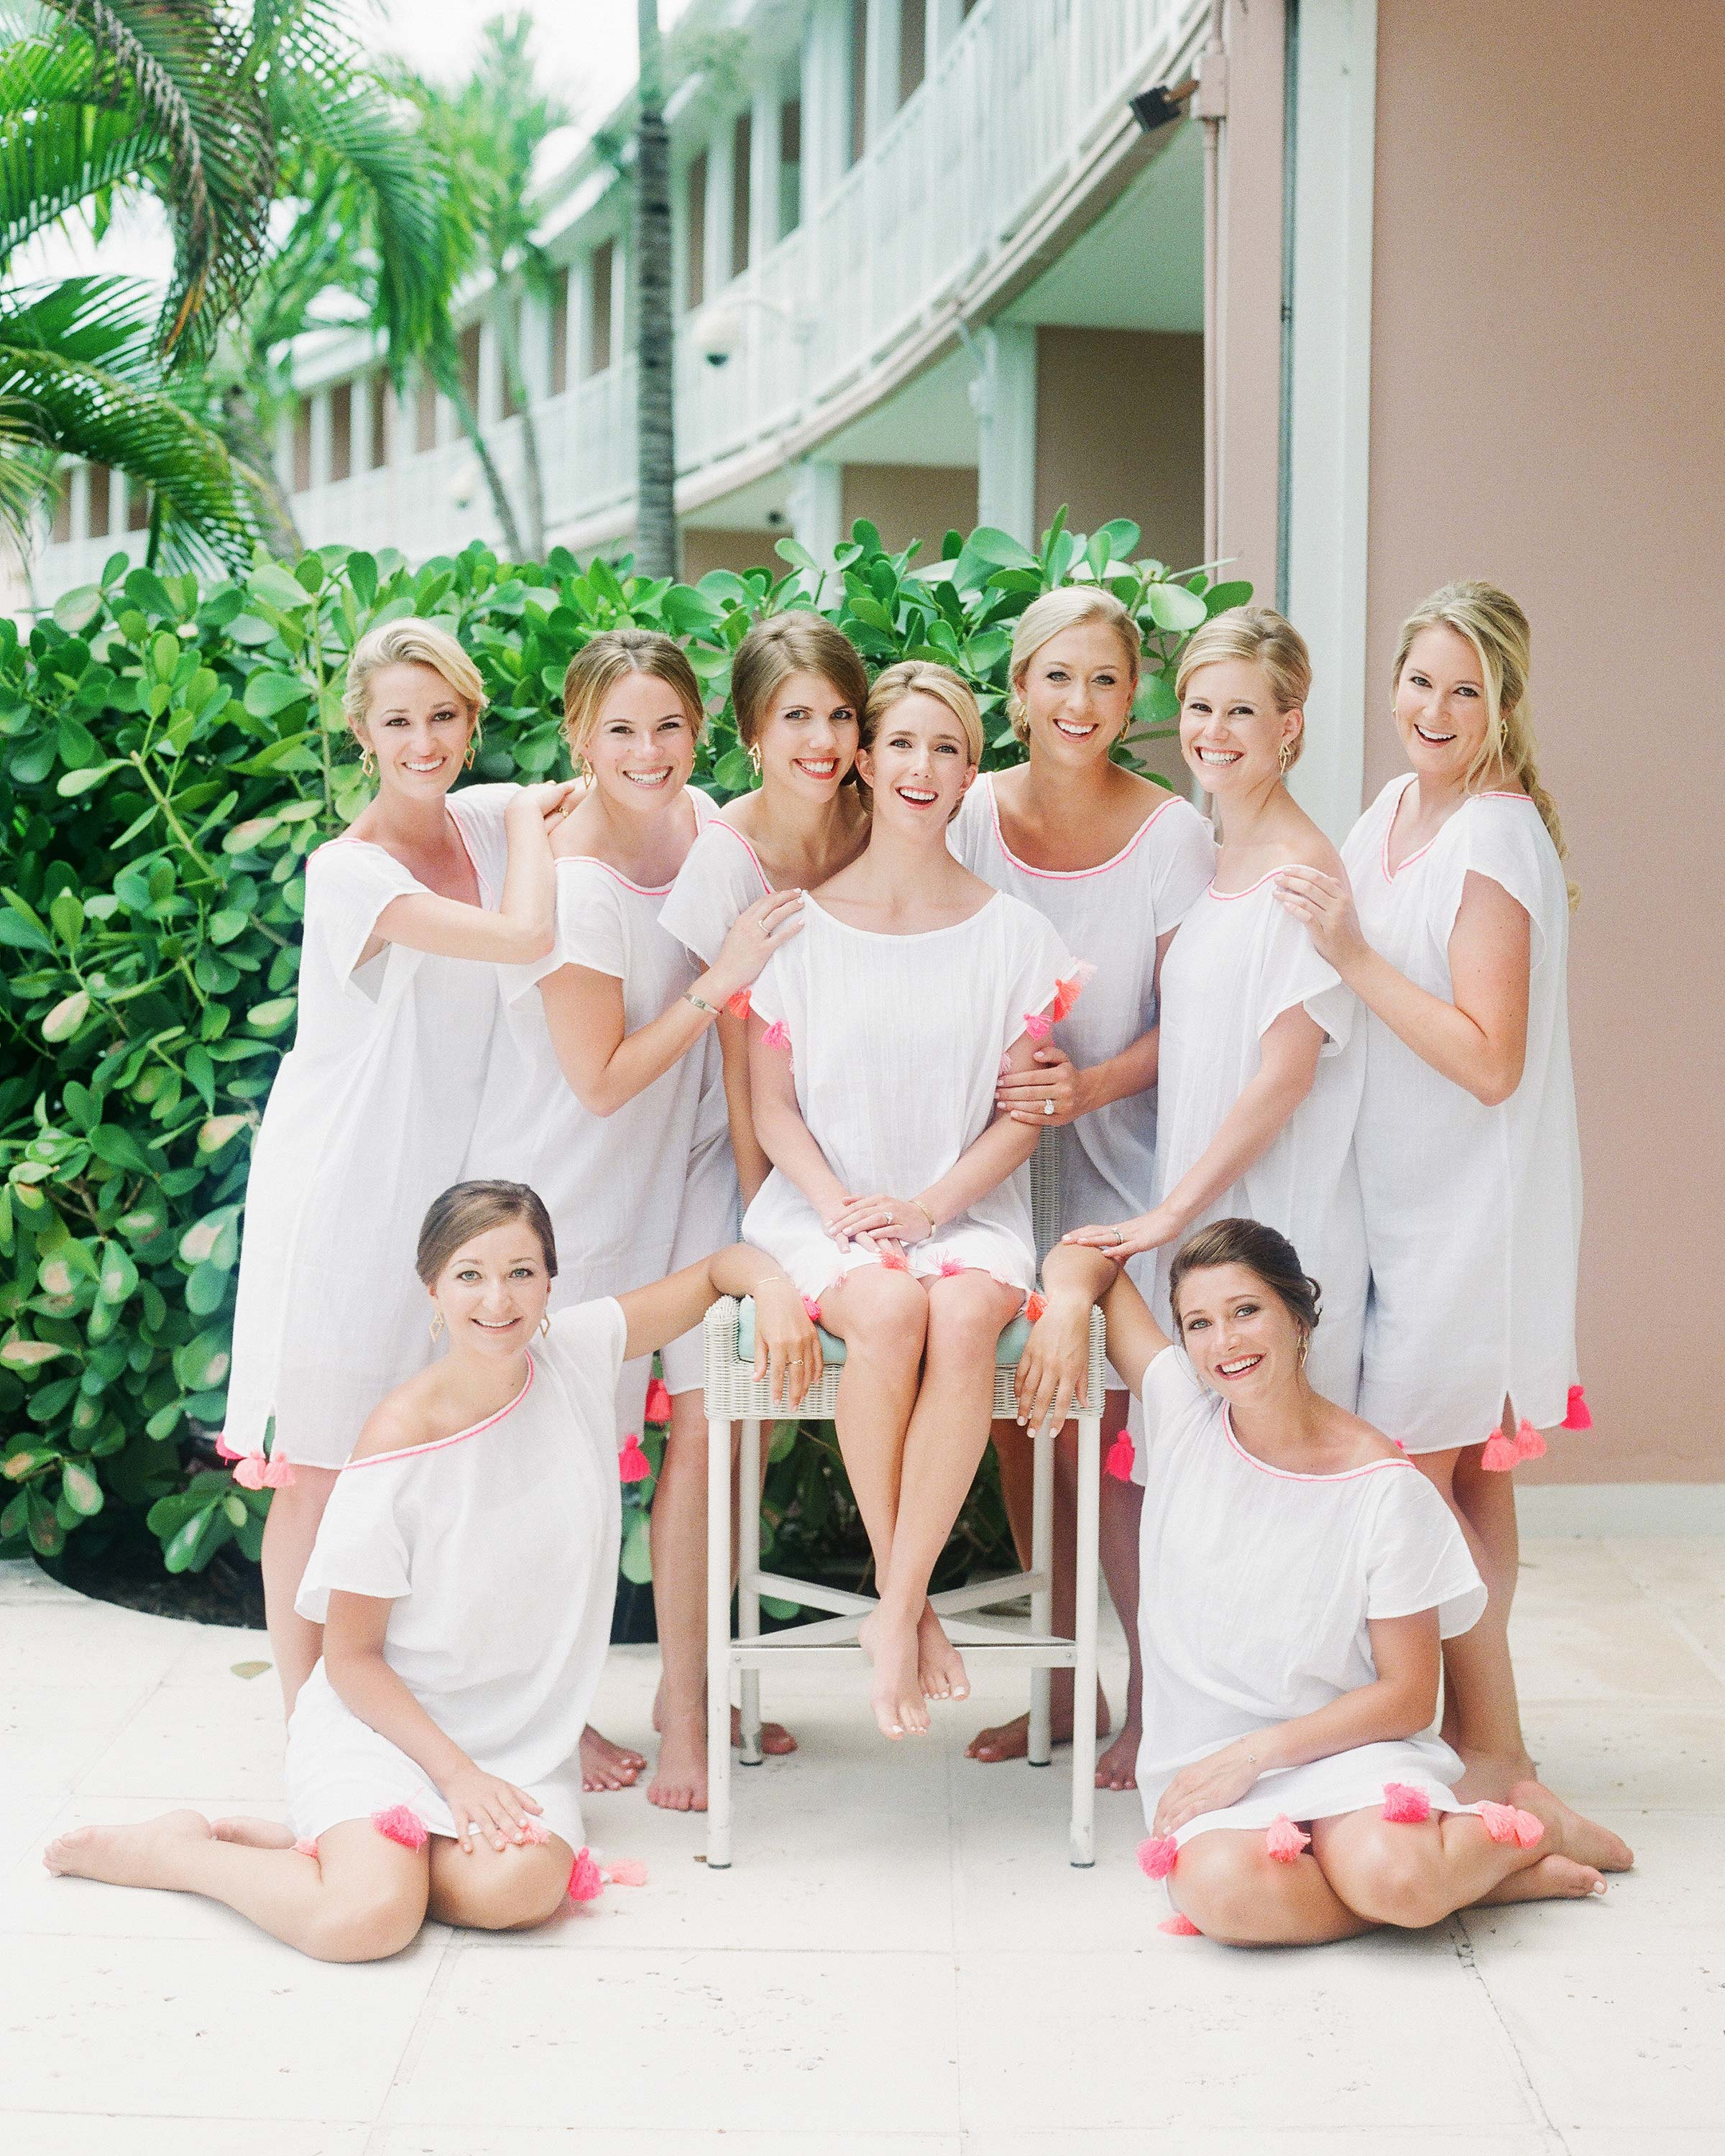 Bridesmaids Robes Alternatives To Set You And Your Maids Apart Martha Stewart Weddings